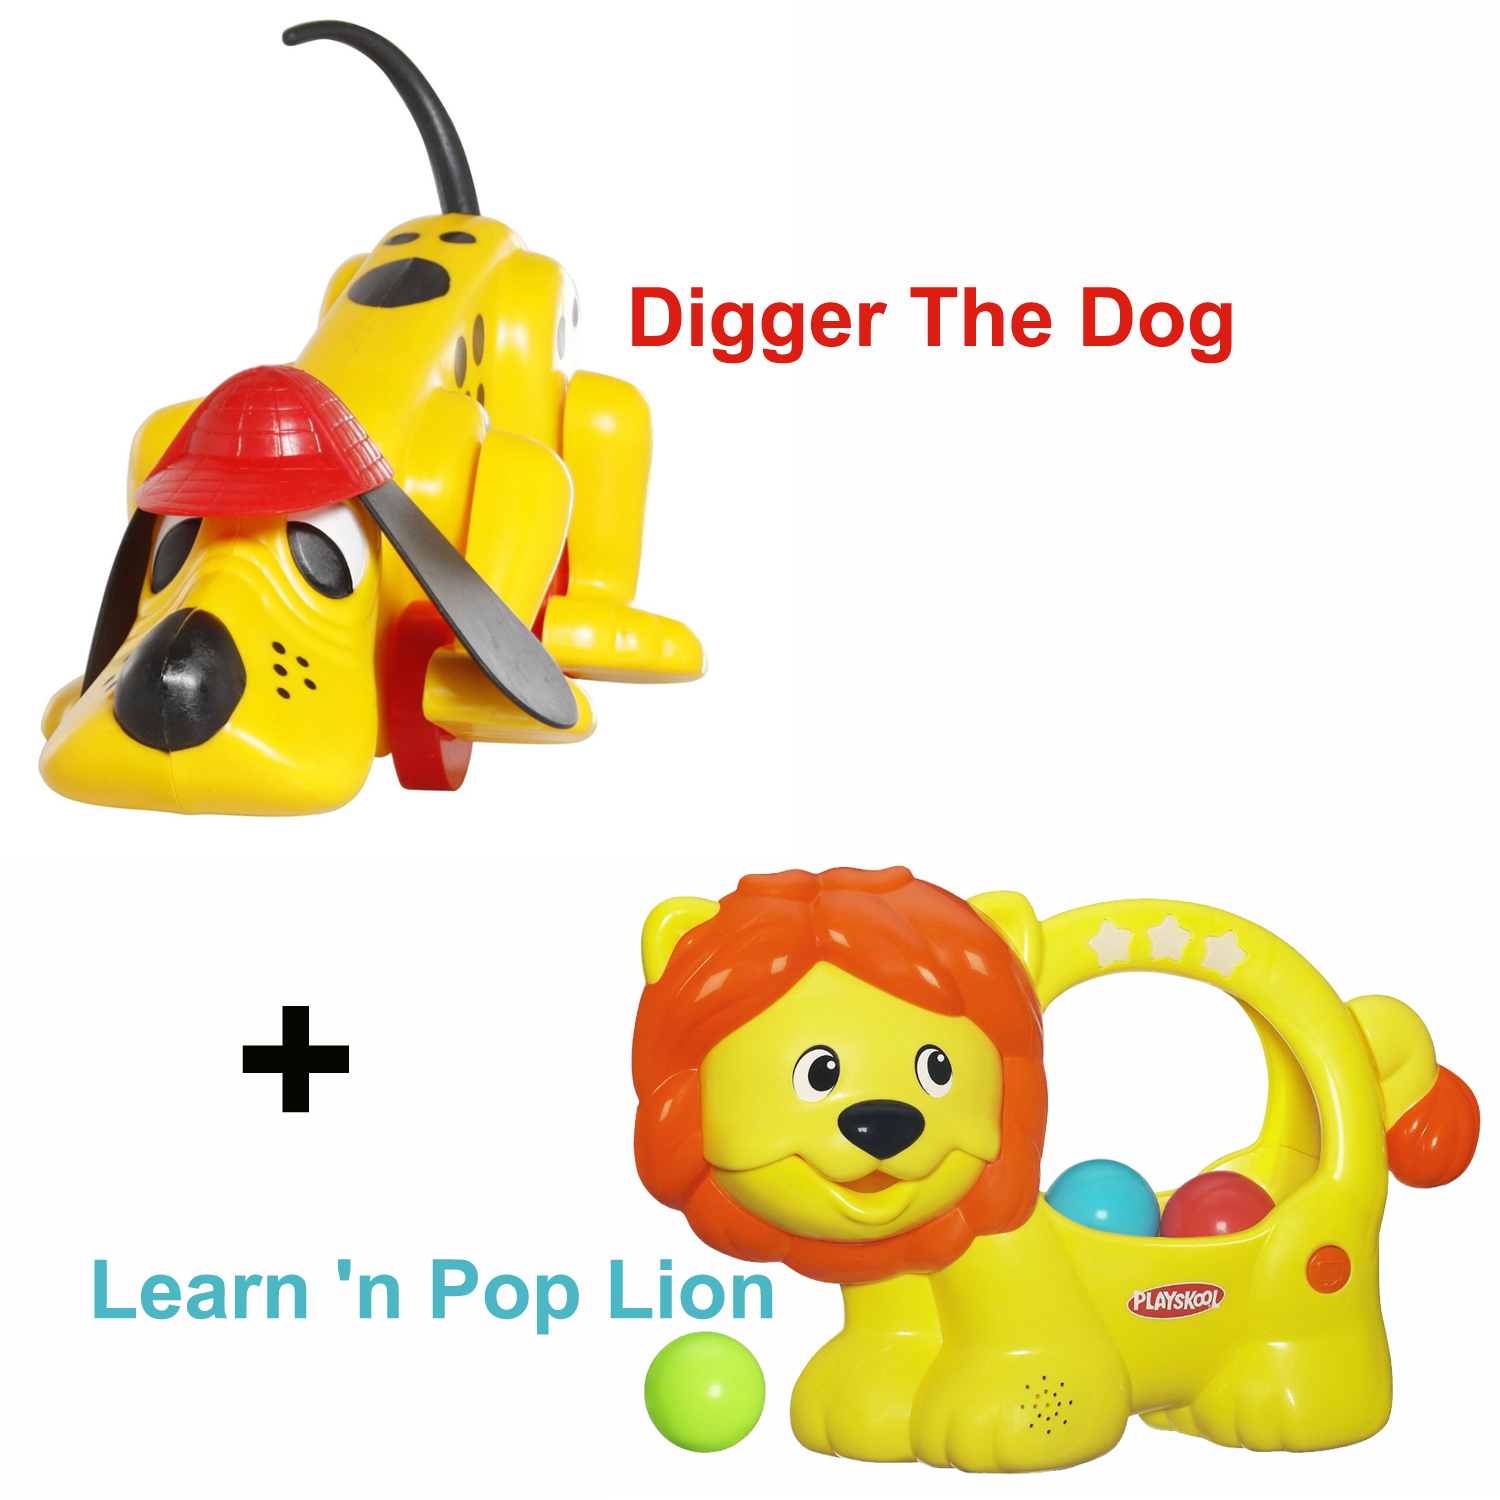 Digger The Dog and Learn 'n Pop Lion